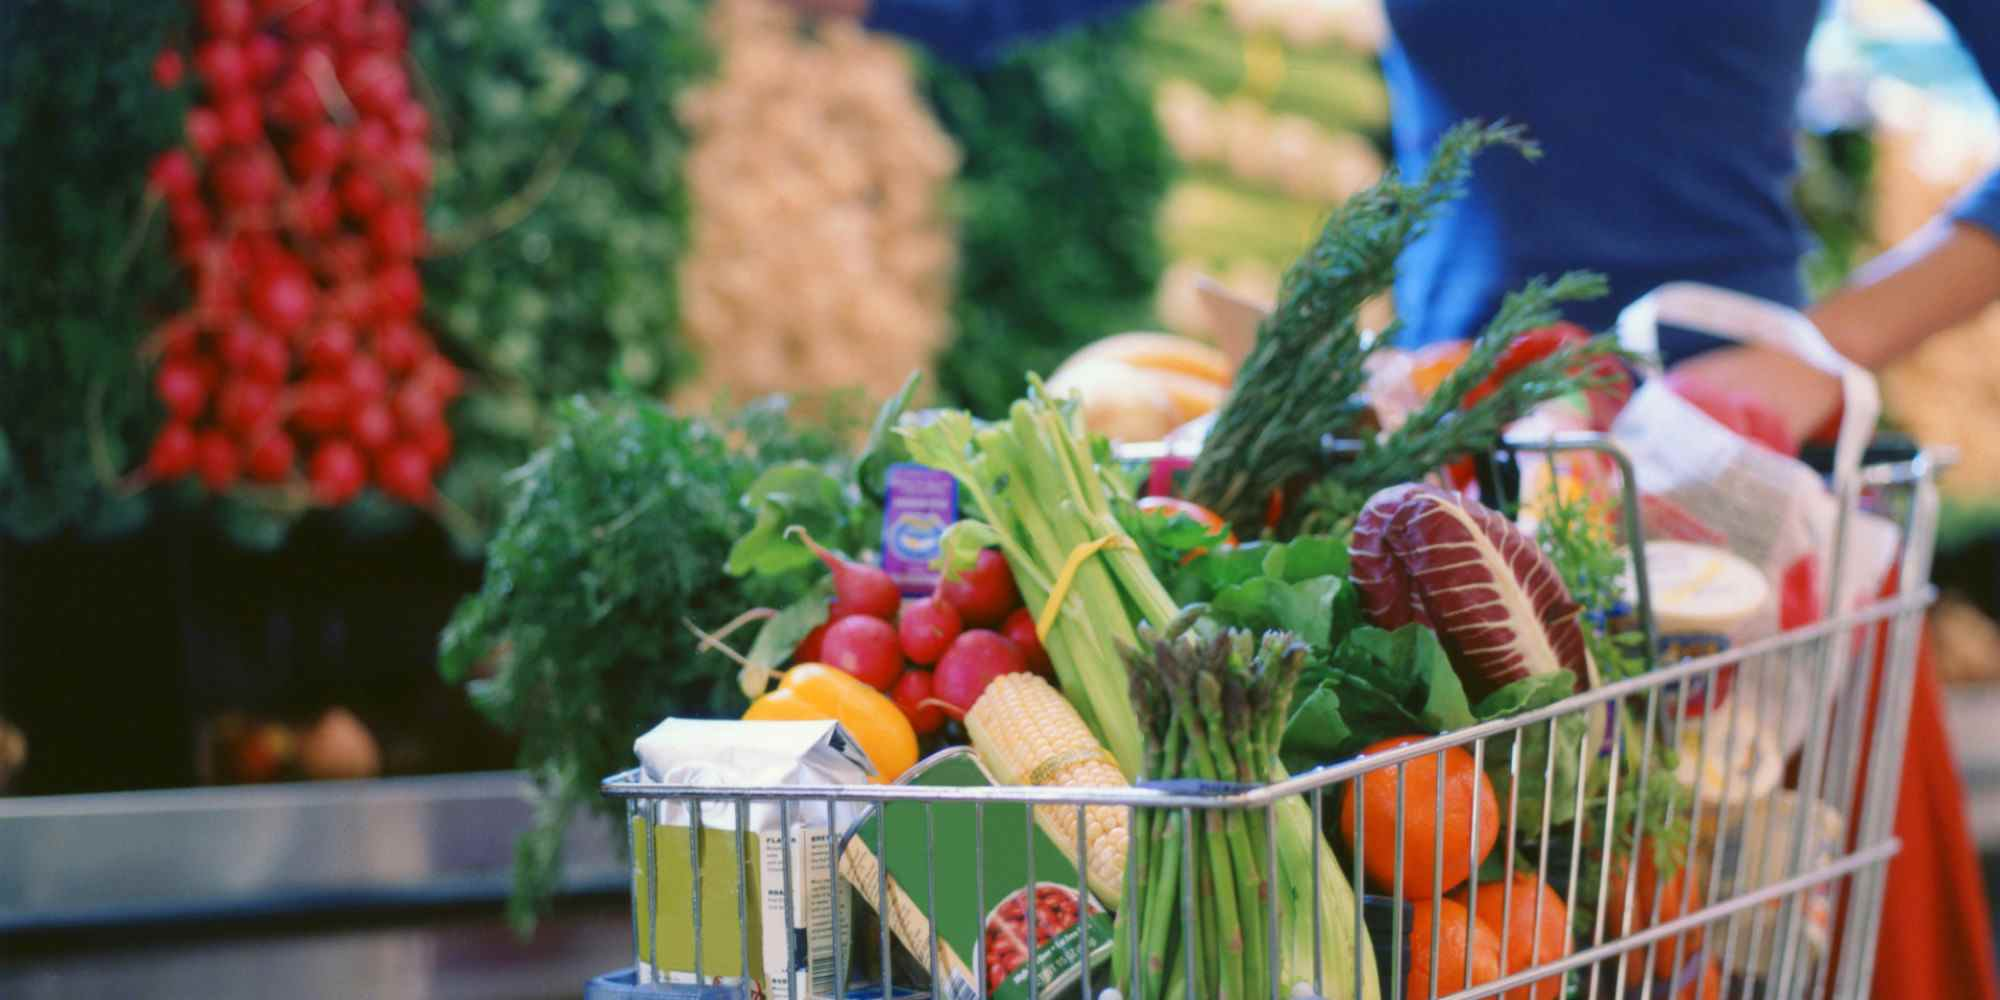 Grocery cart with healthy foods for runners